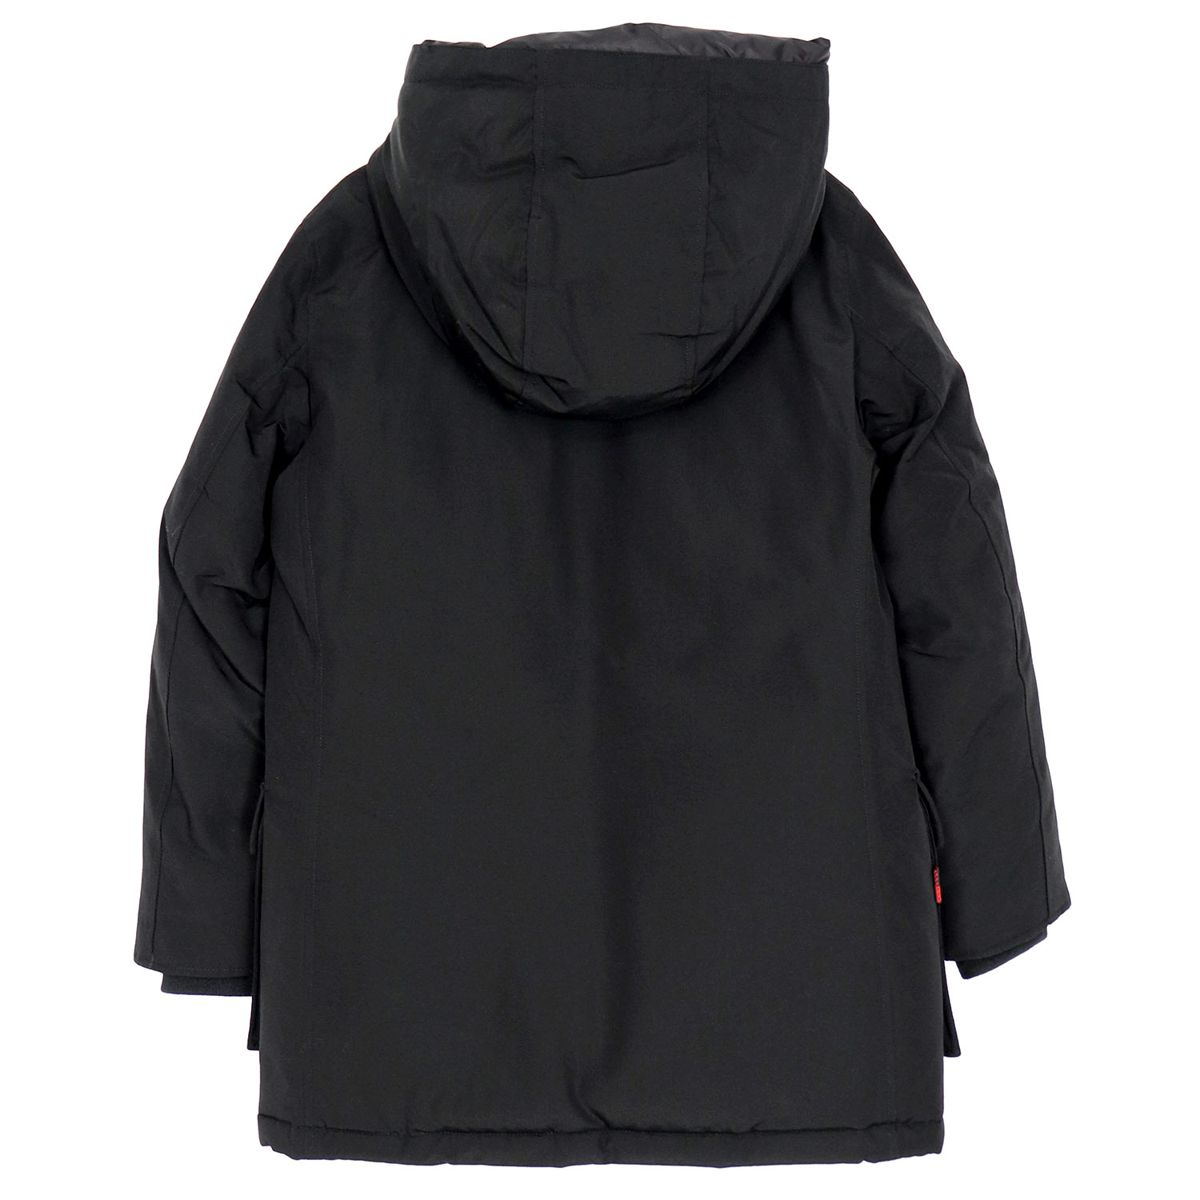 Artic parka with logo detail on the collar and contrasting buttons Black Woolrich